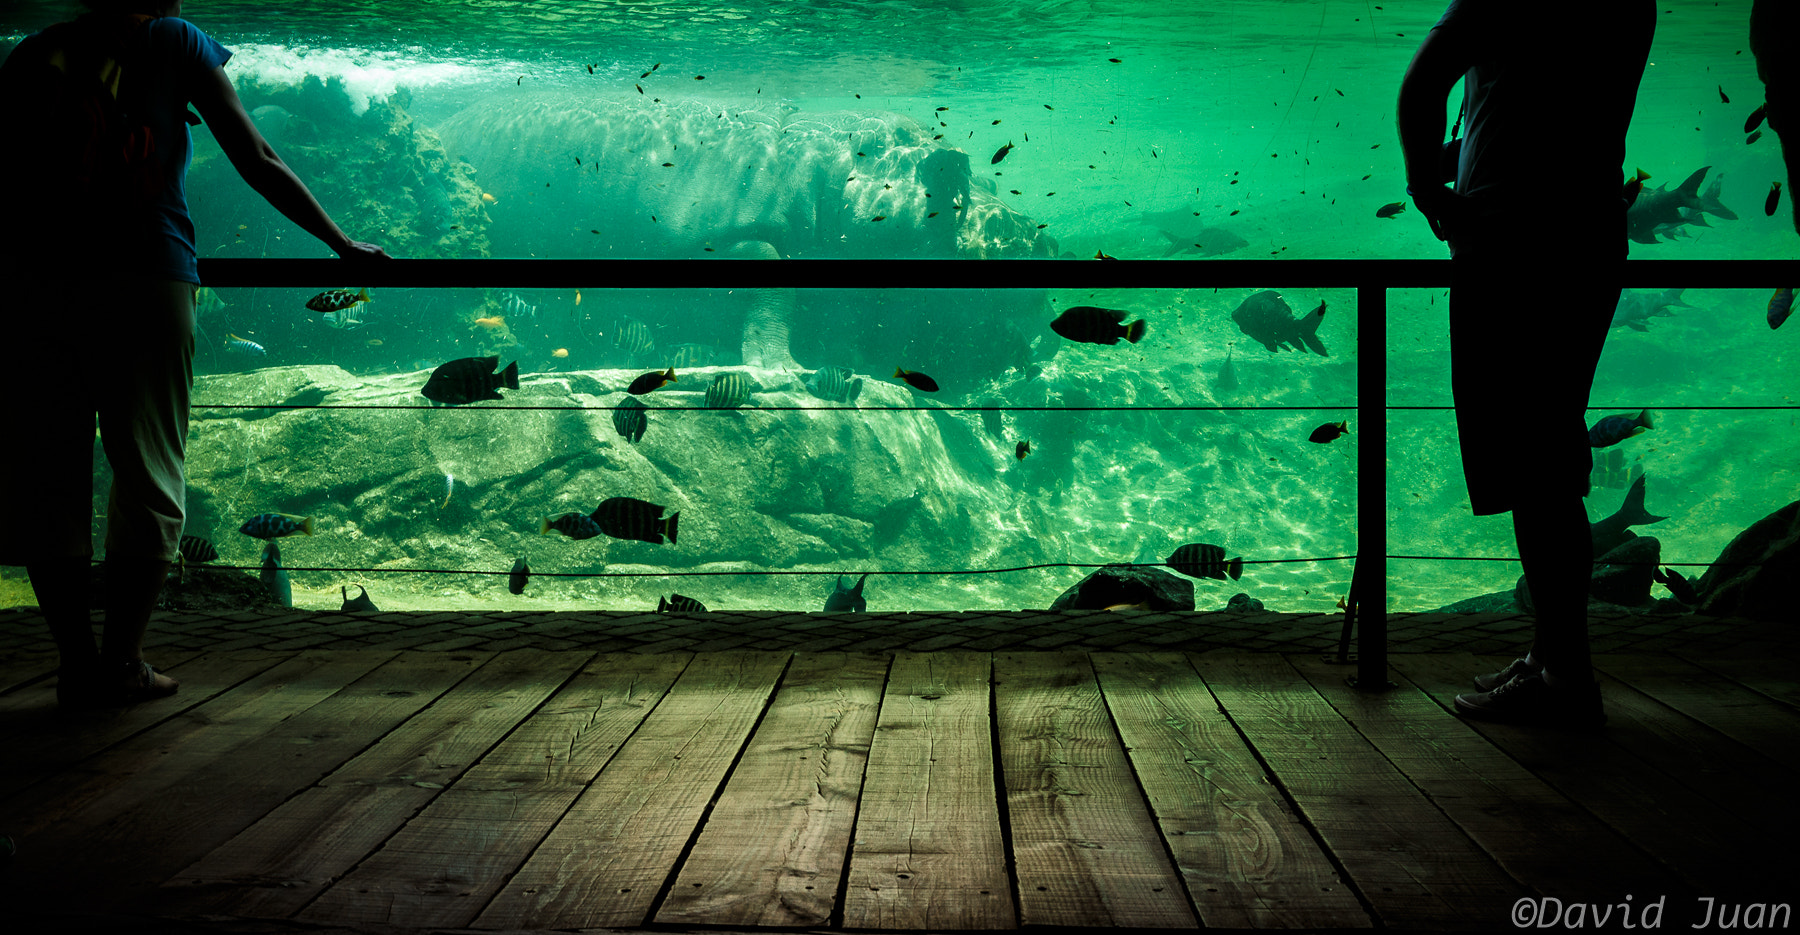 Photograph The house of the hippo by David Juan on 500px